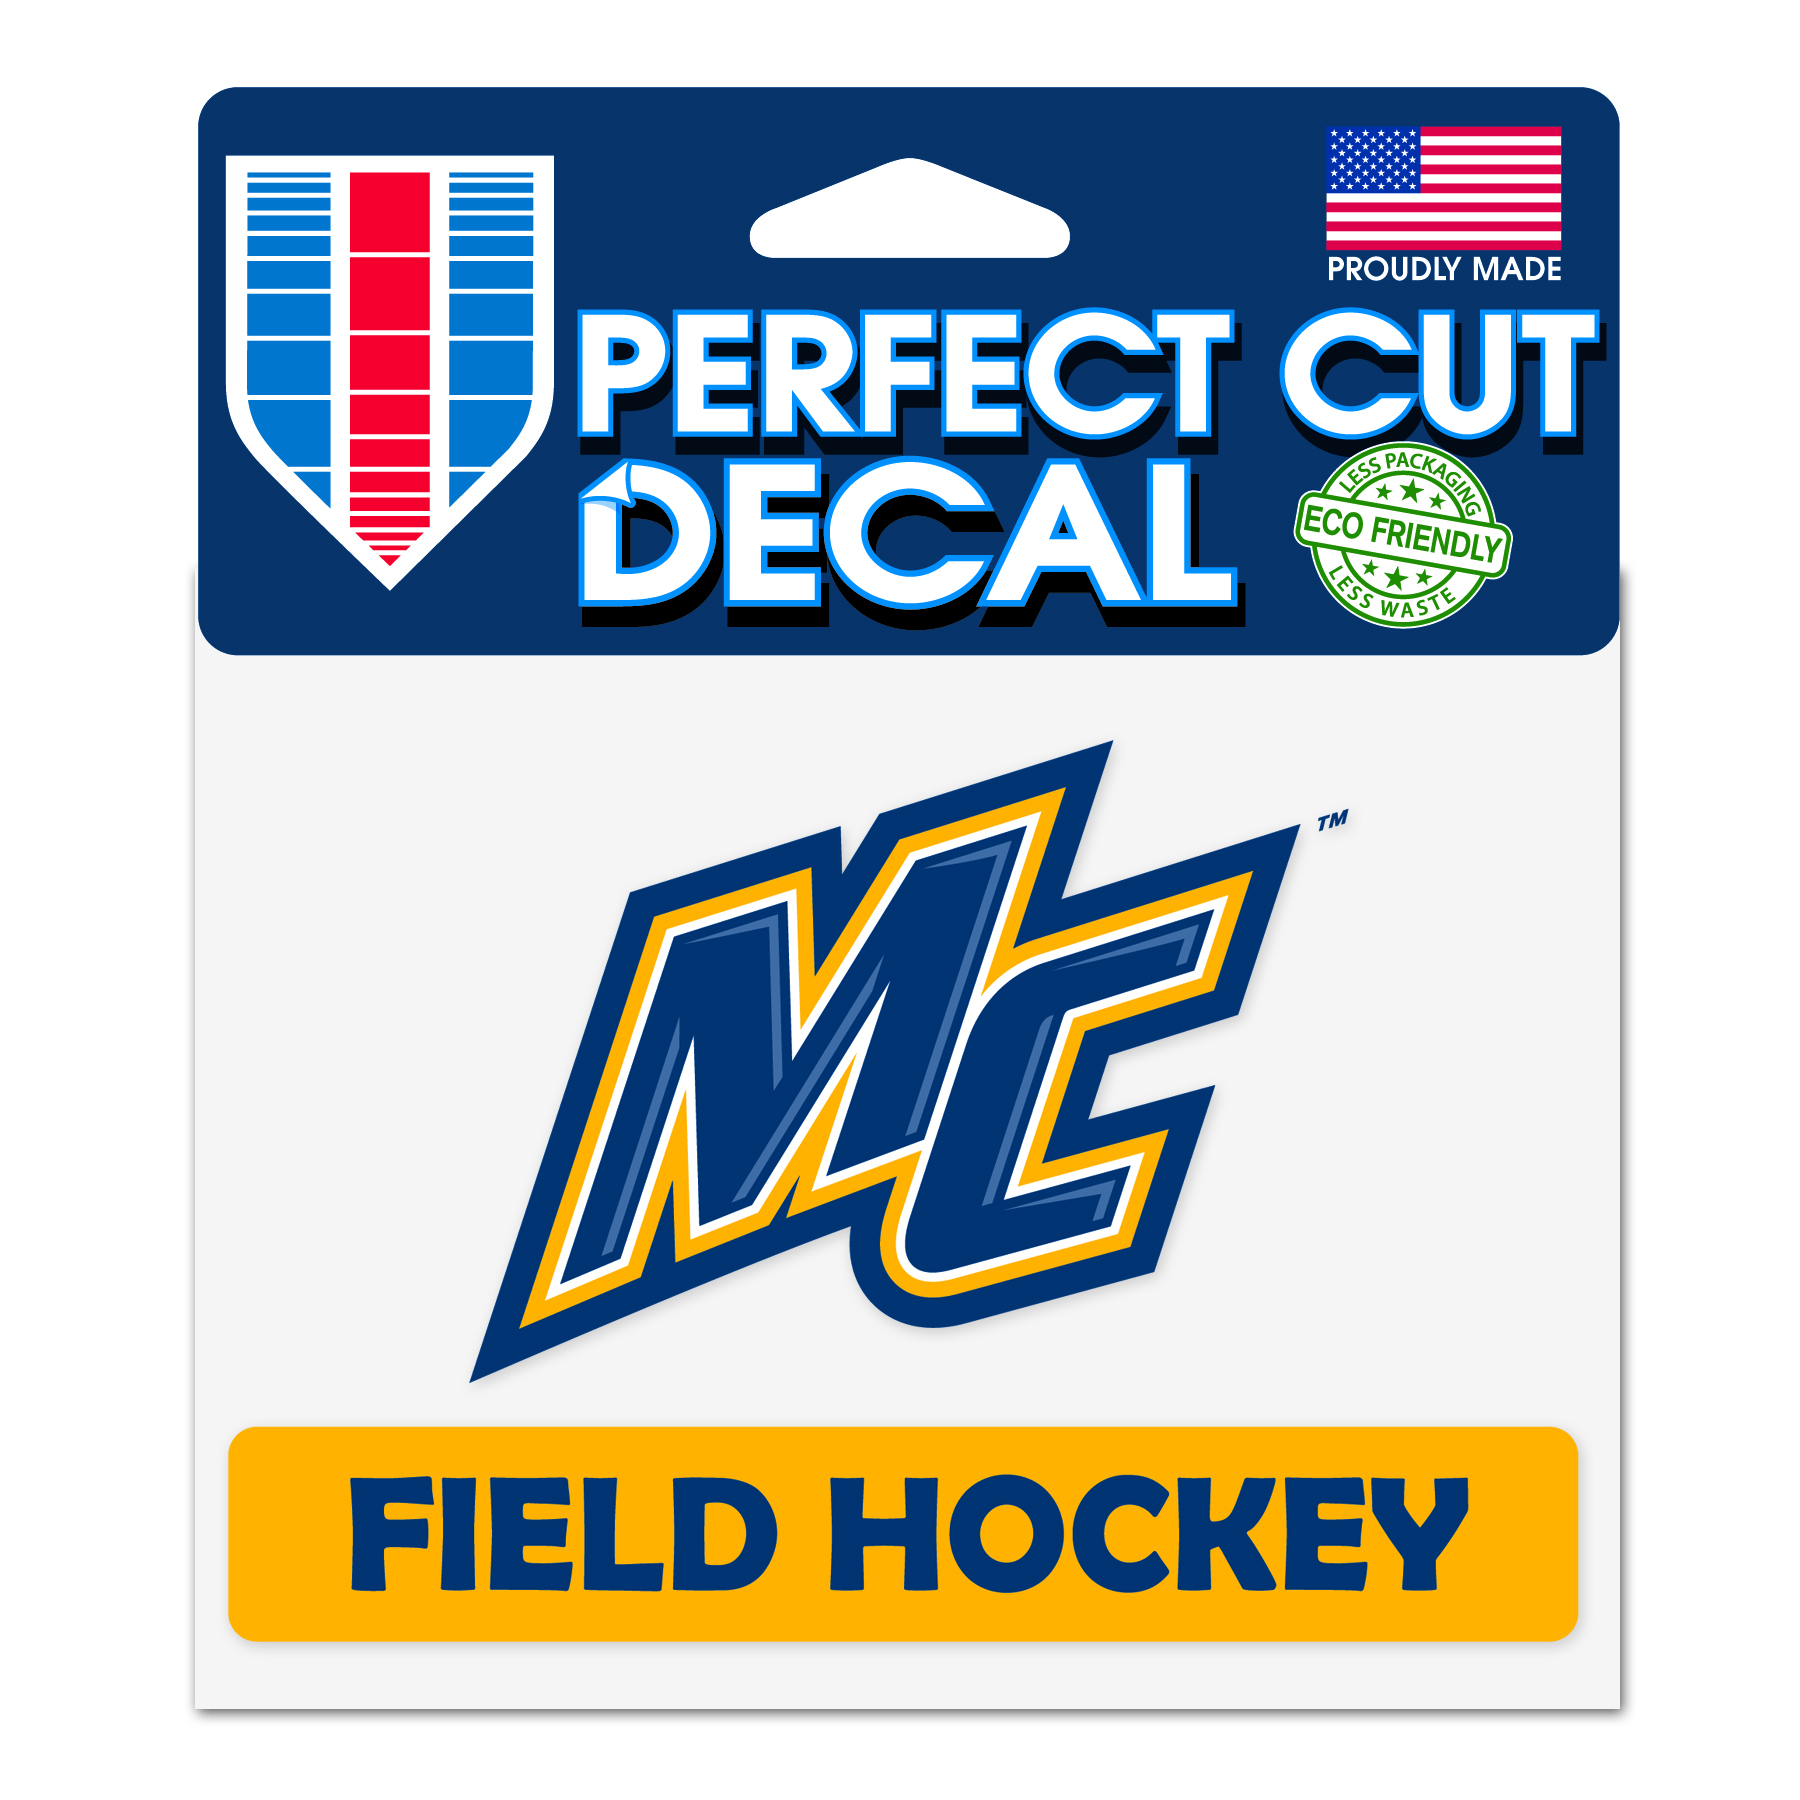 Decal - Field Hockey